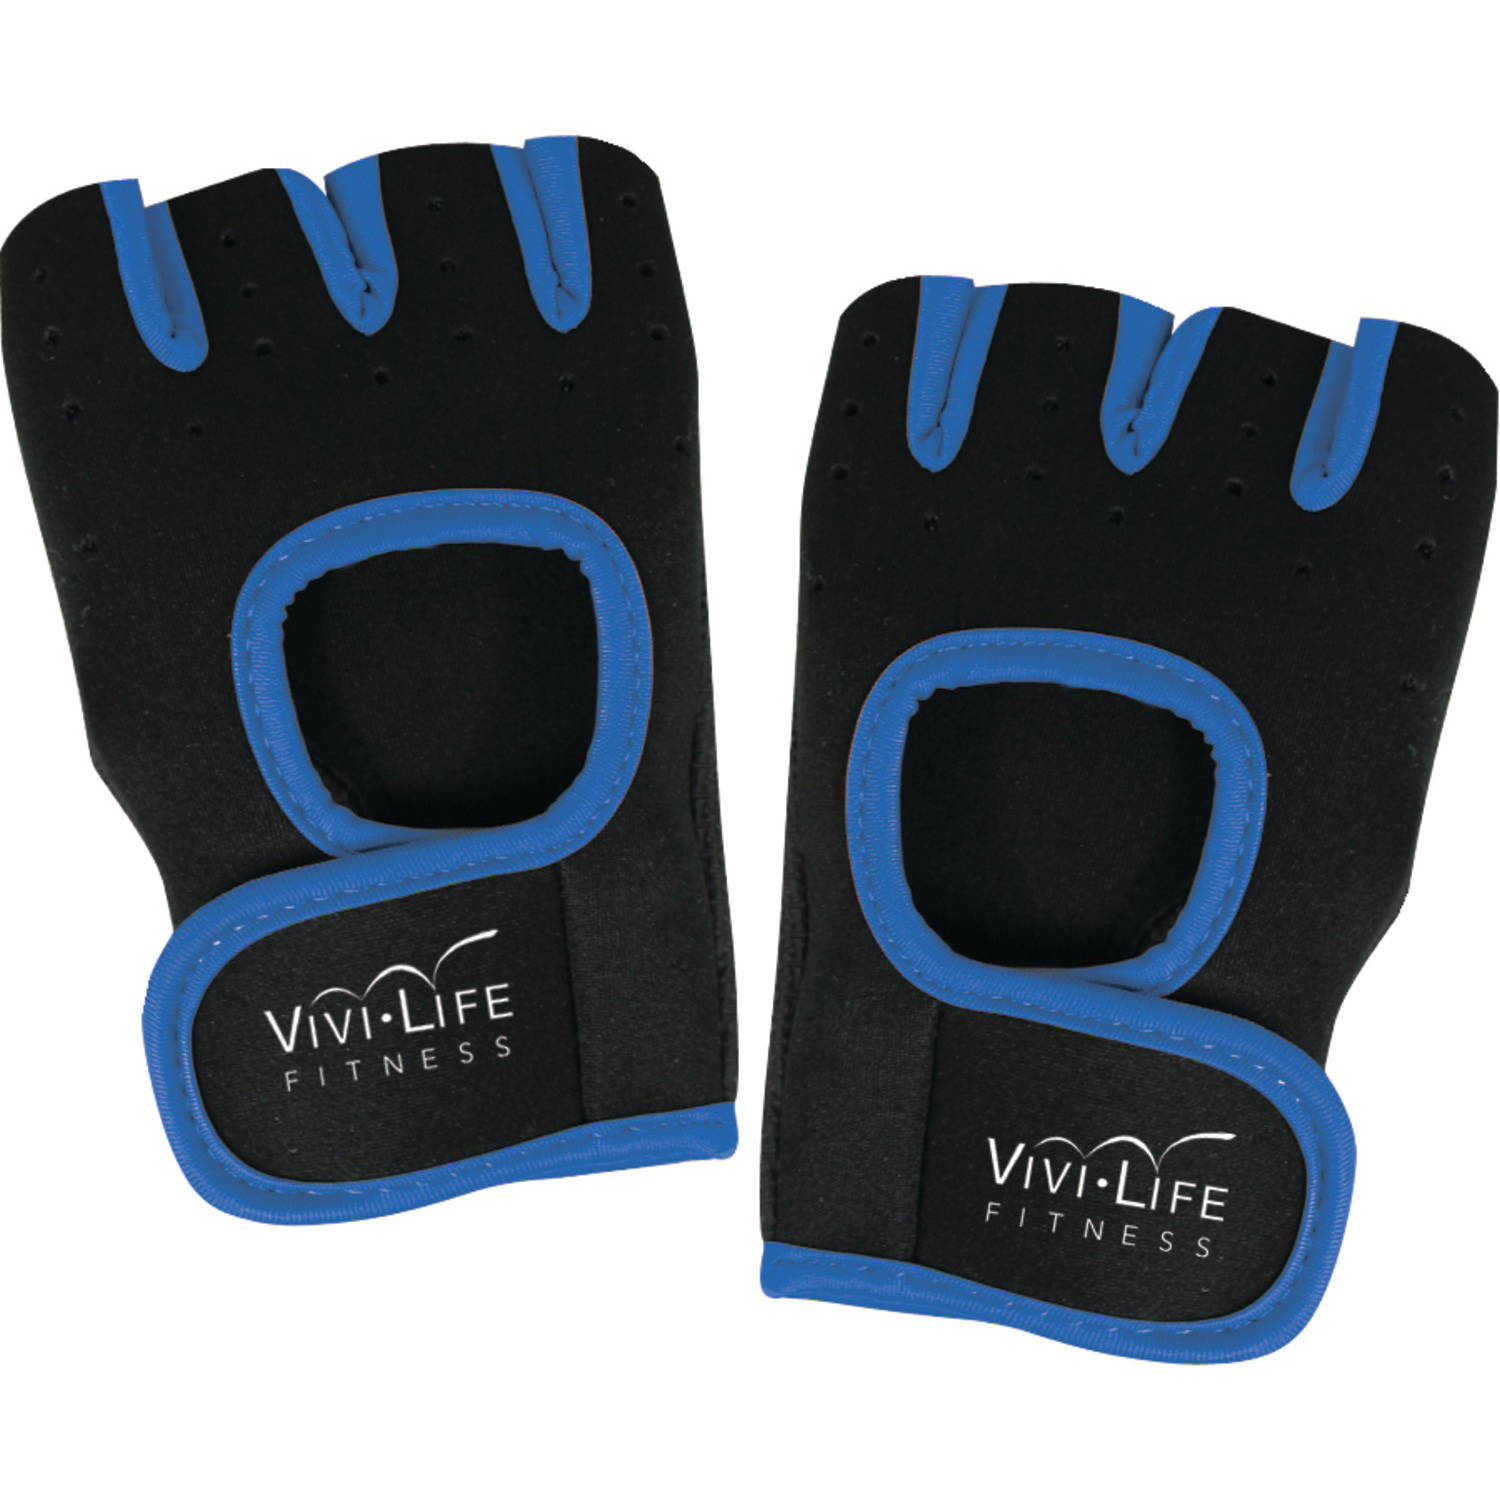 Vivi Life Pf-v8310-blu Workout Gloves, Blue